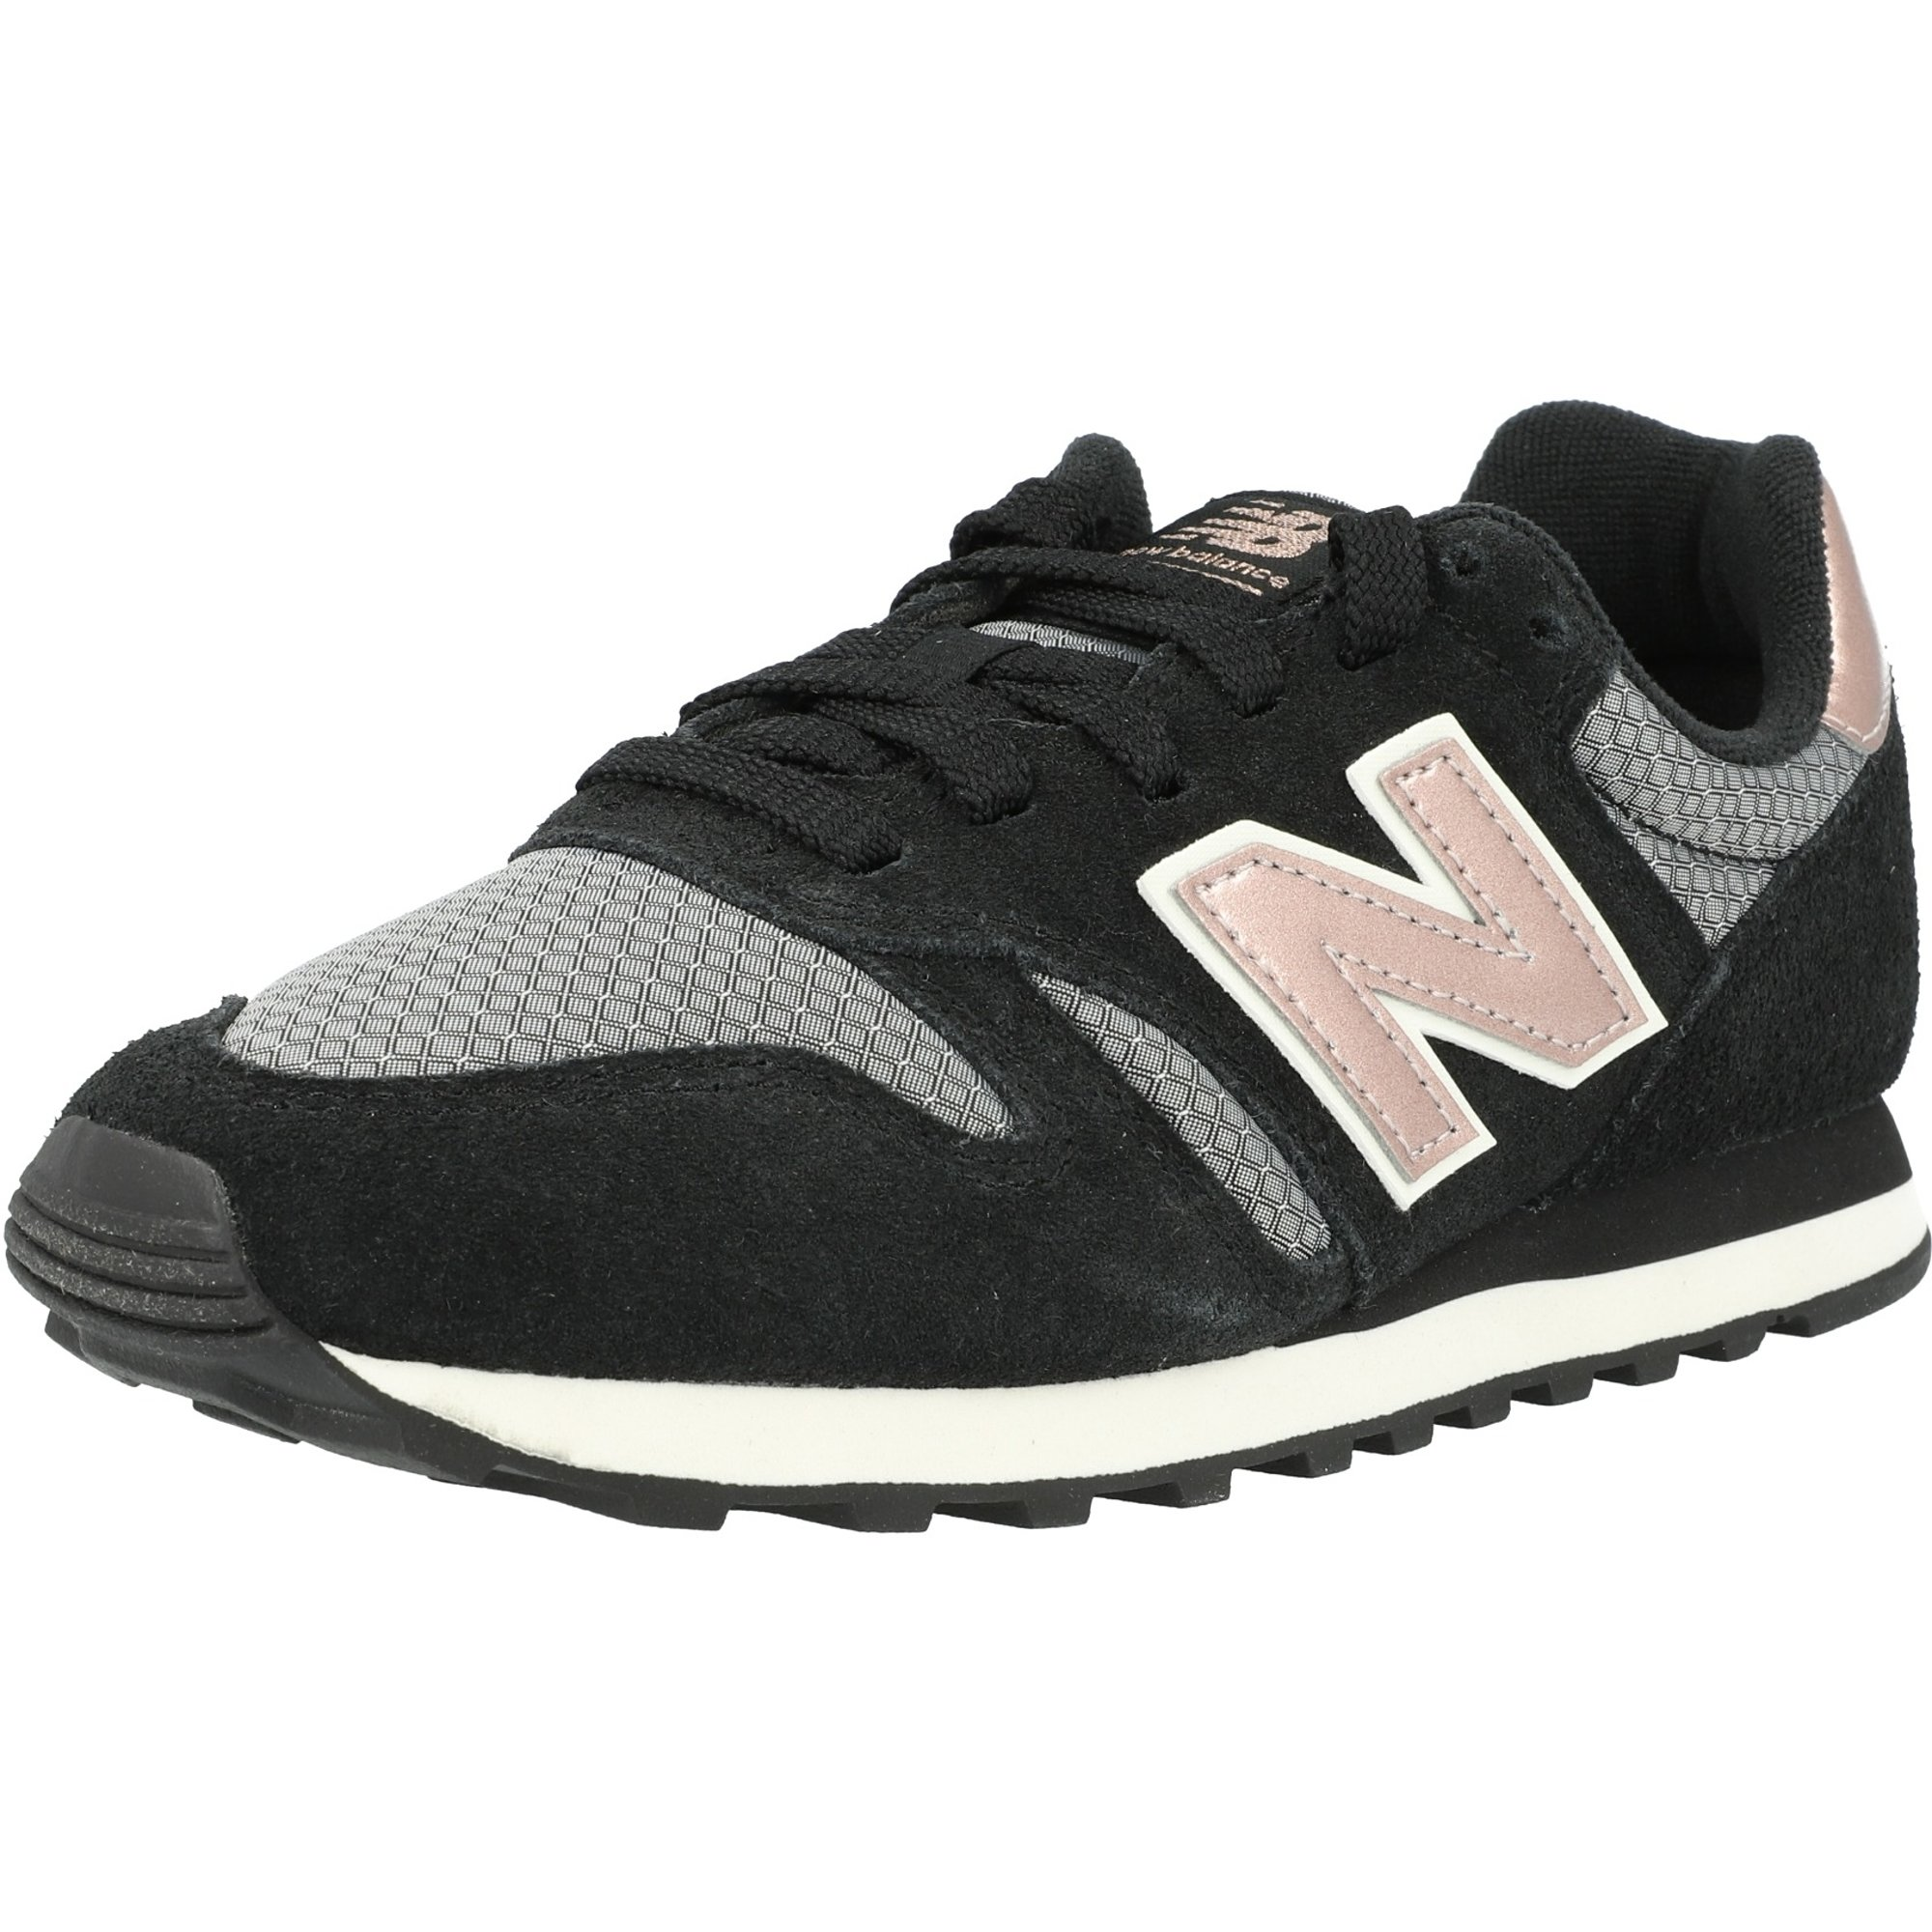 New Balance 373 Black/Champagne Leather Adult